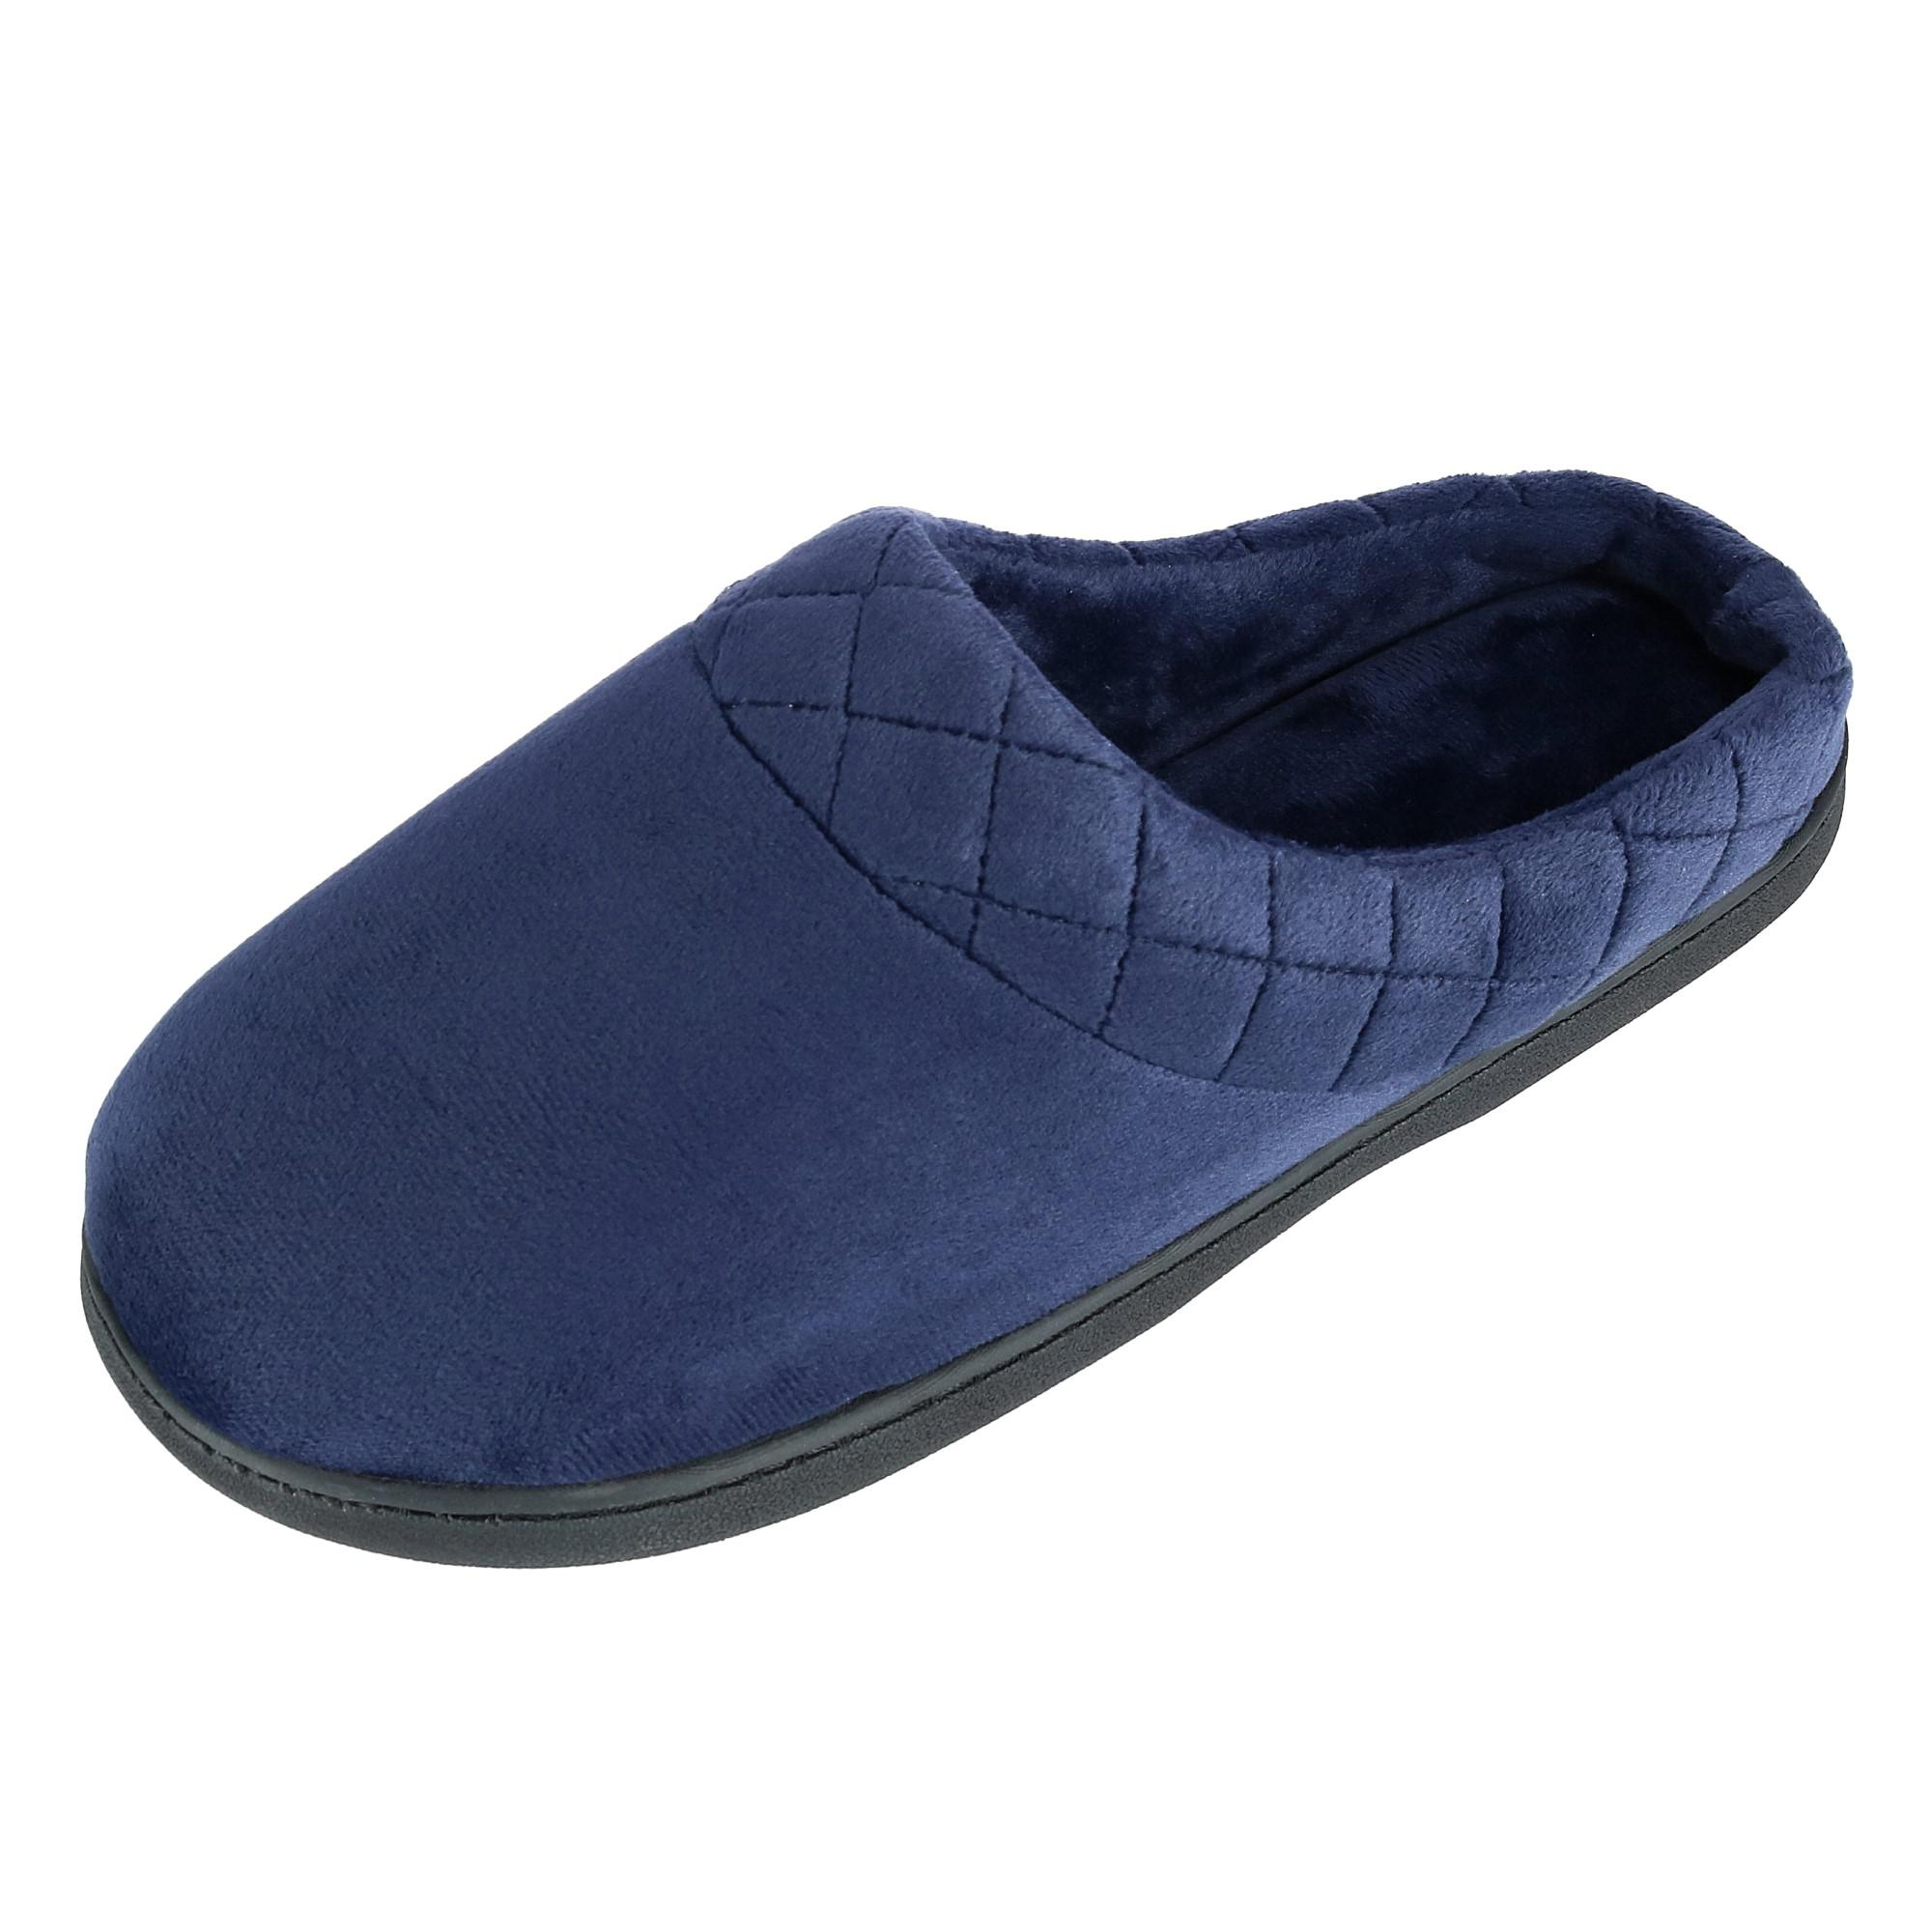 New-Dearfoams-Women-039-s-Microfiber-Velour-Clog-Slipper-with-Quilt-Detail thumbnail 9